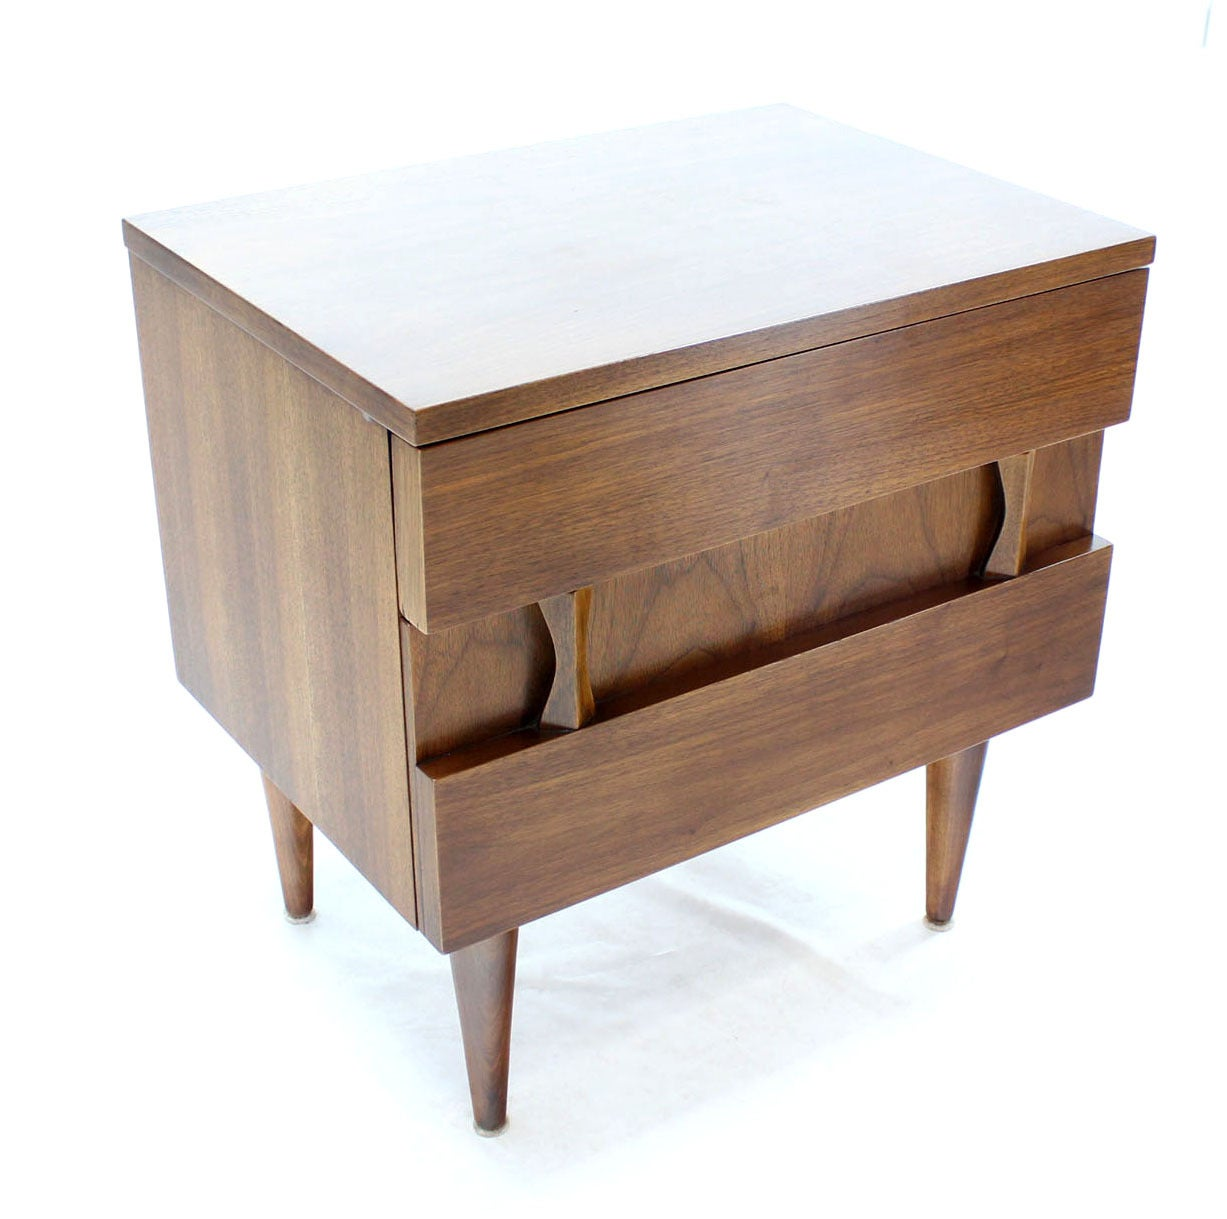 20th Century Danish Mid-Century Modern Walnut End Table or Night Stand For Sale